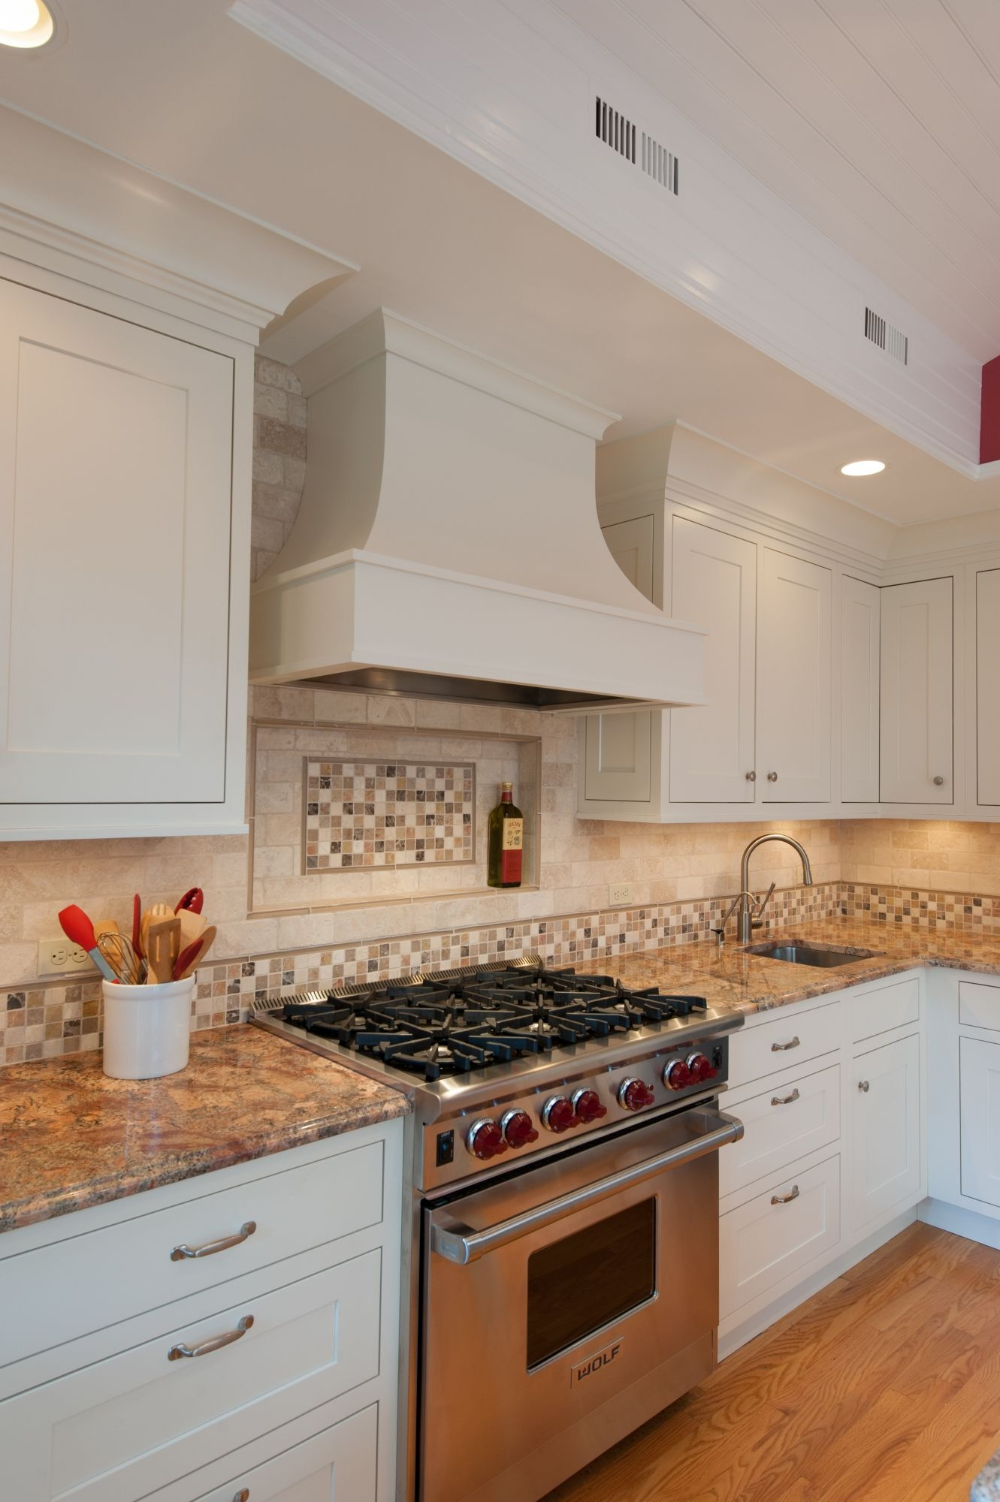 Wooden Chimney Hoods For Kitchens Google Search Kitchen Cabinets And Countertops Kitchen Remodel Home Kitchens